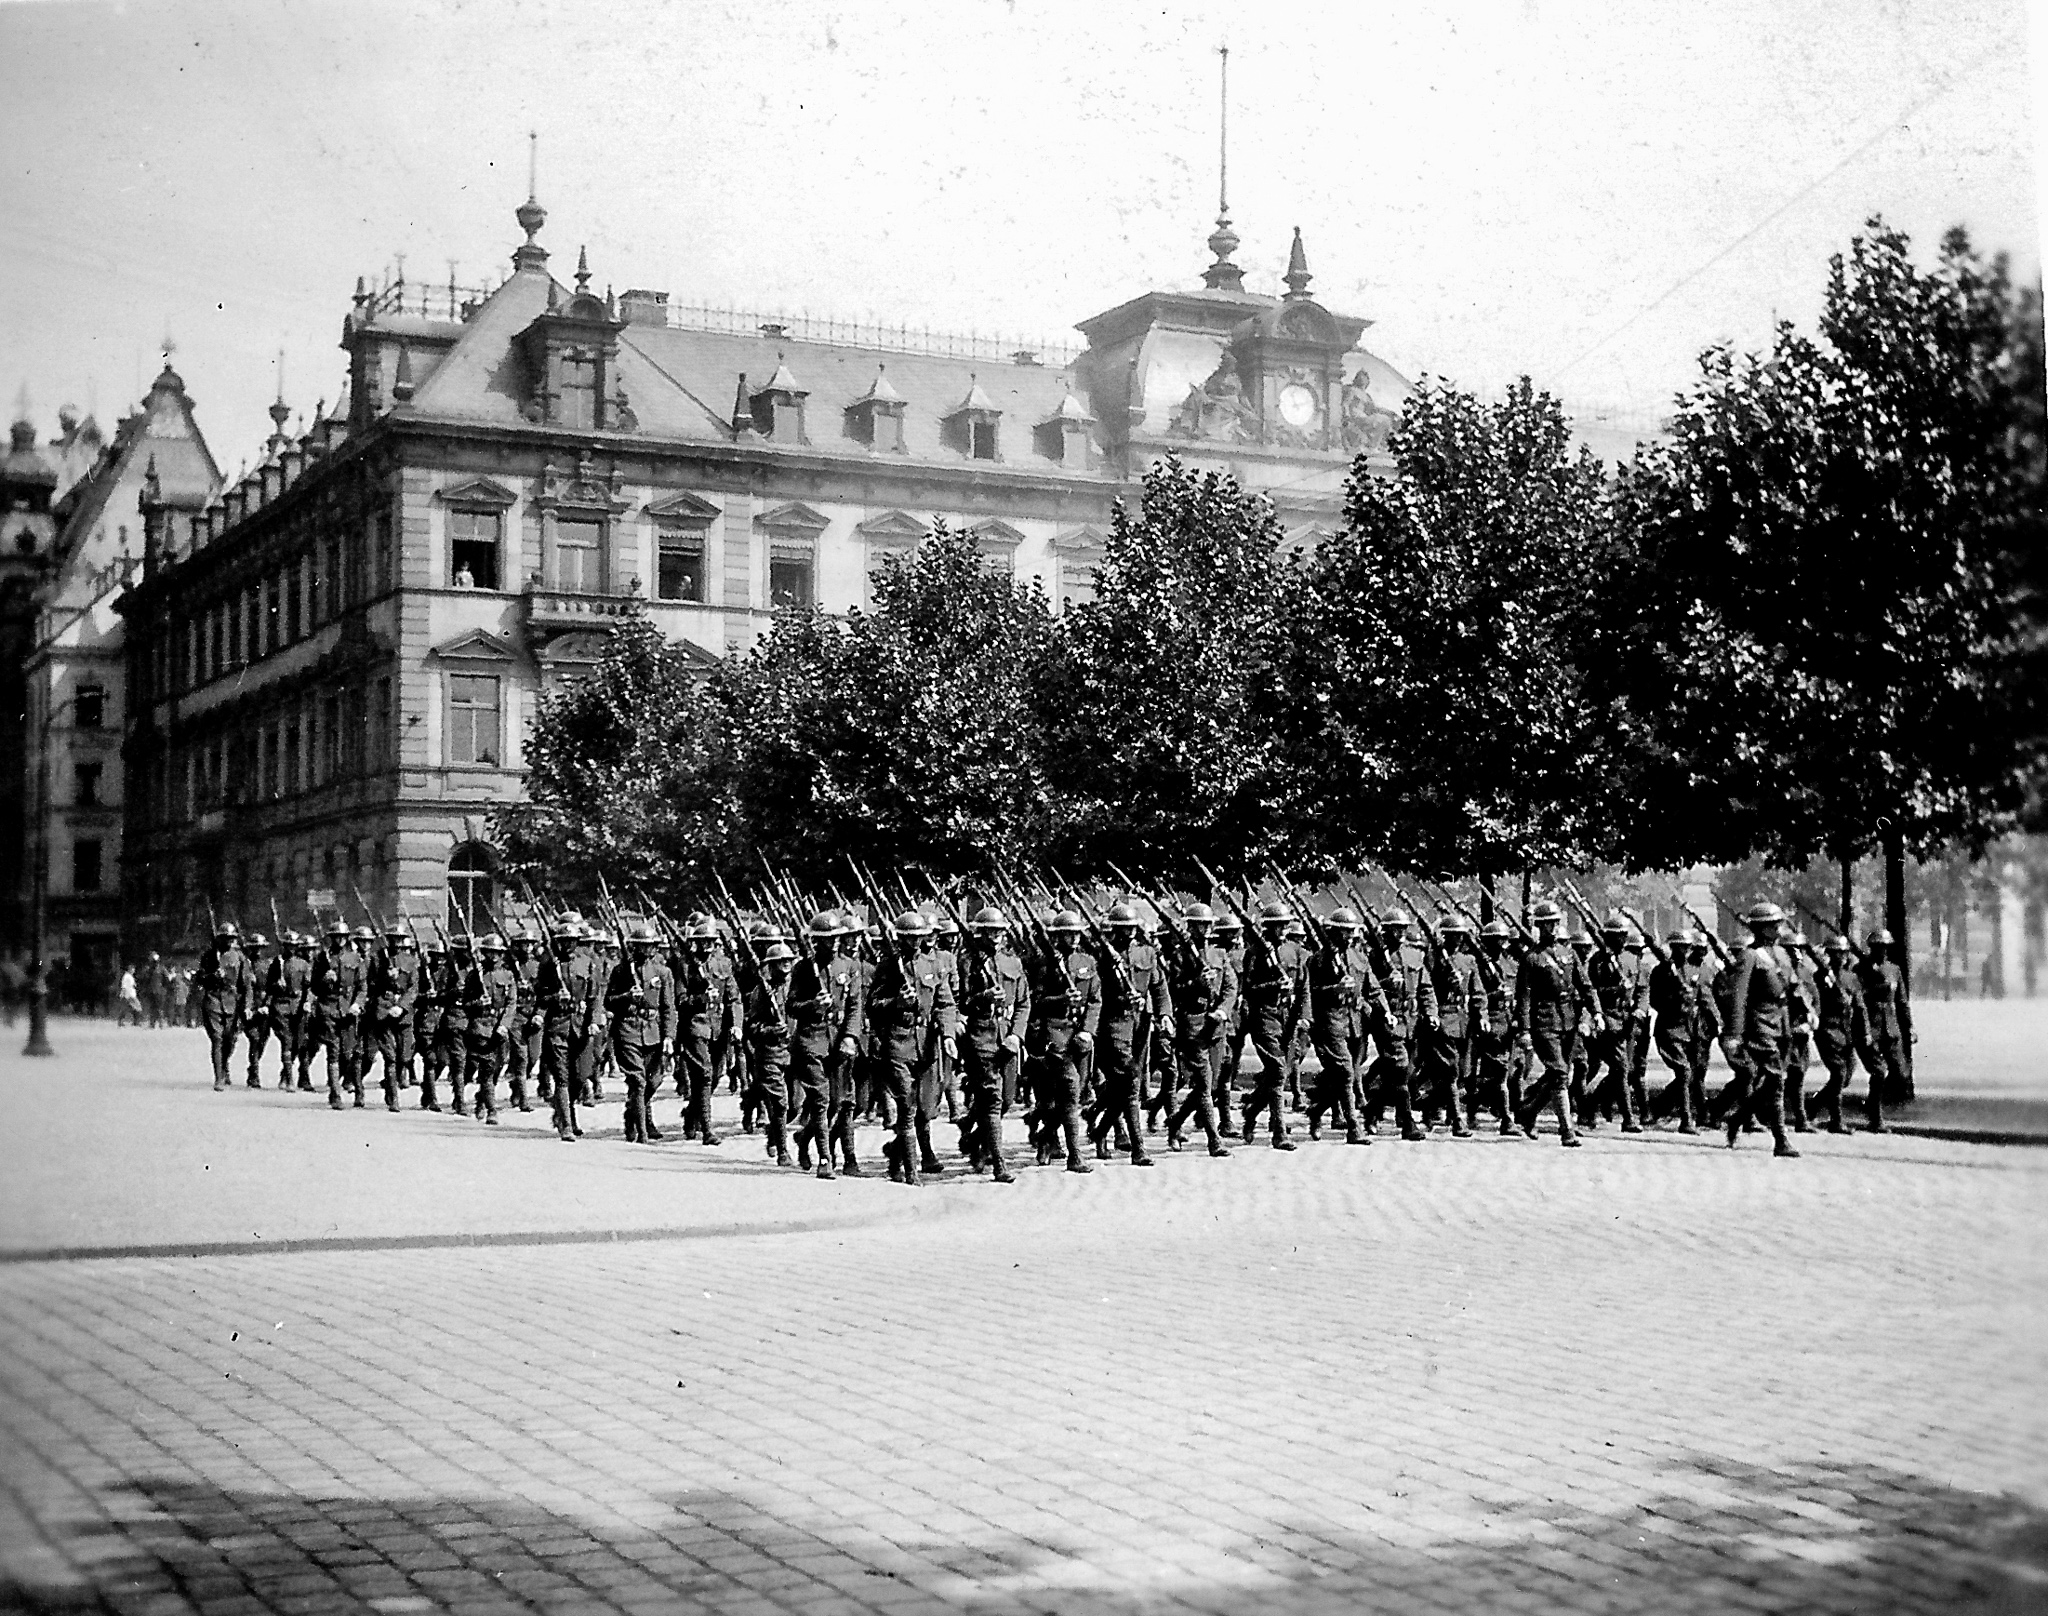 black and white photo of army troops in formation.